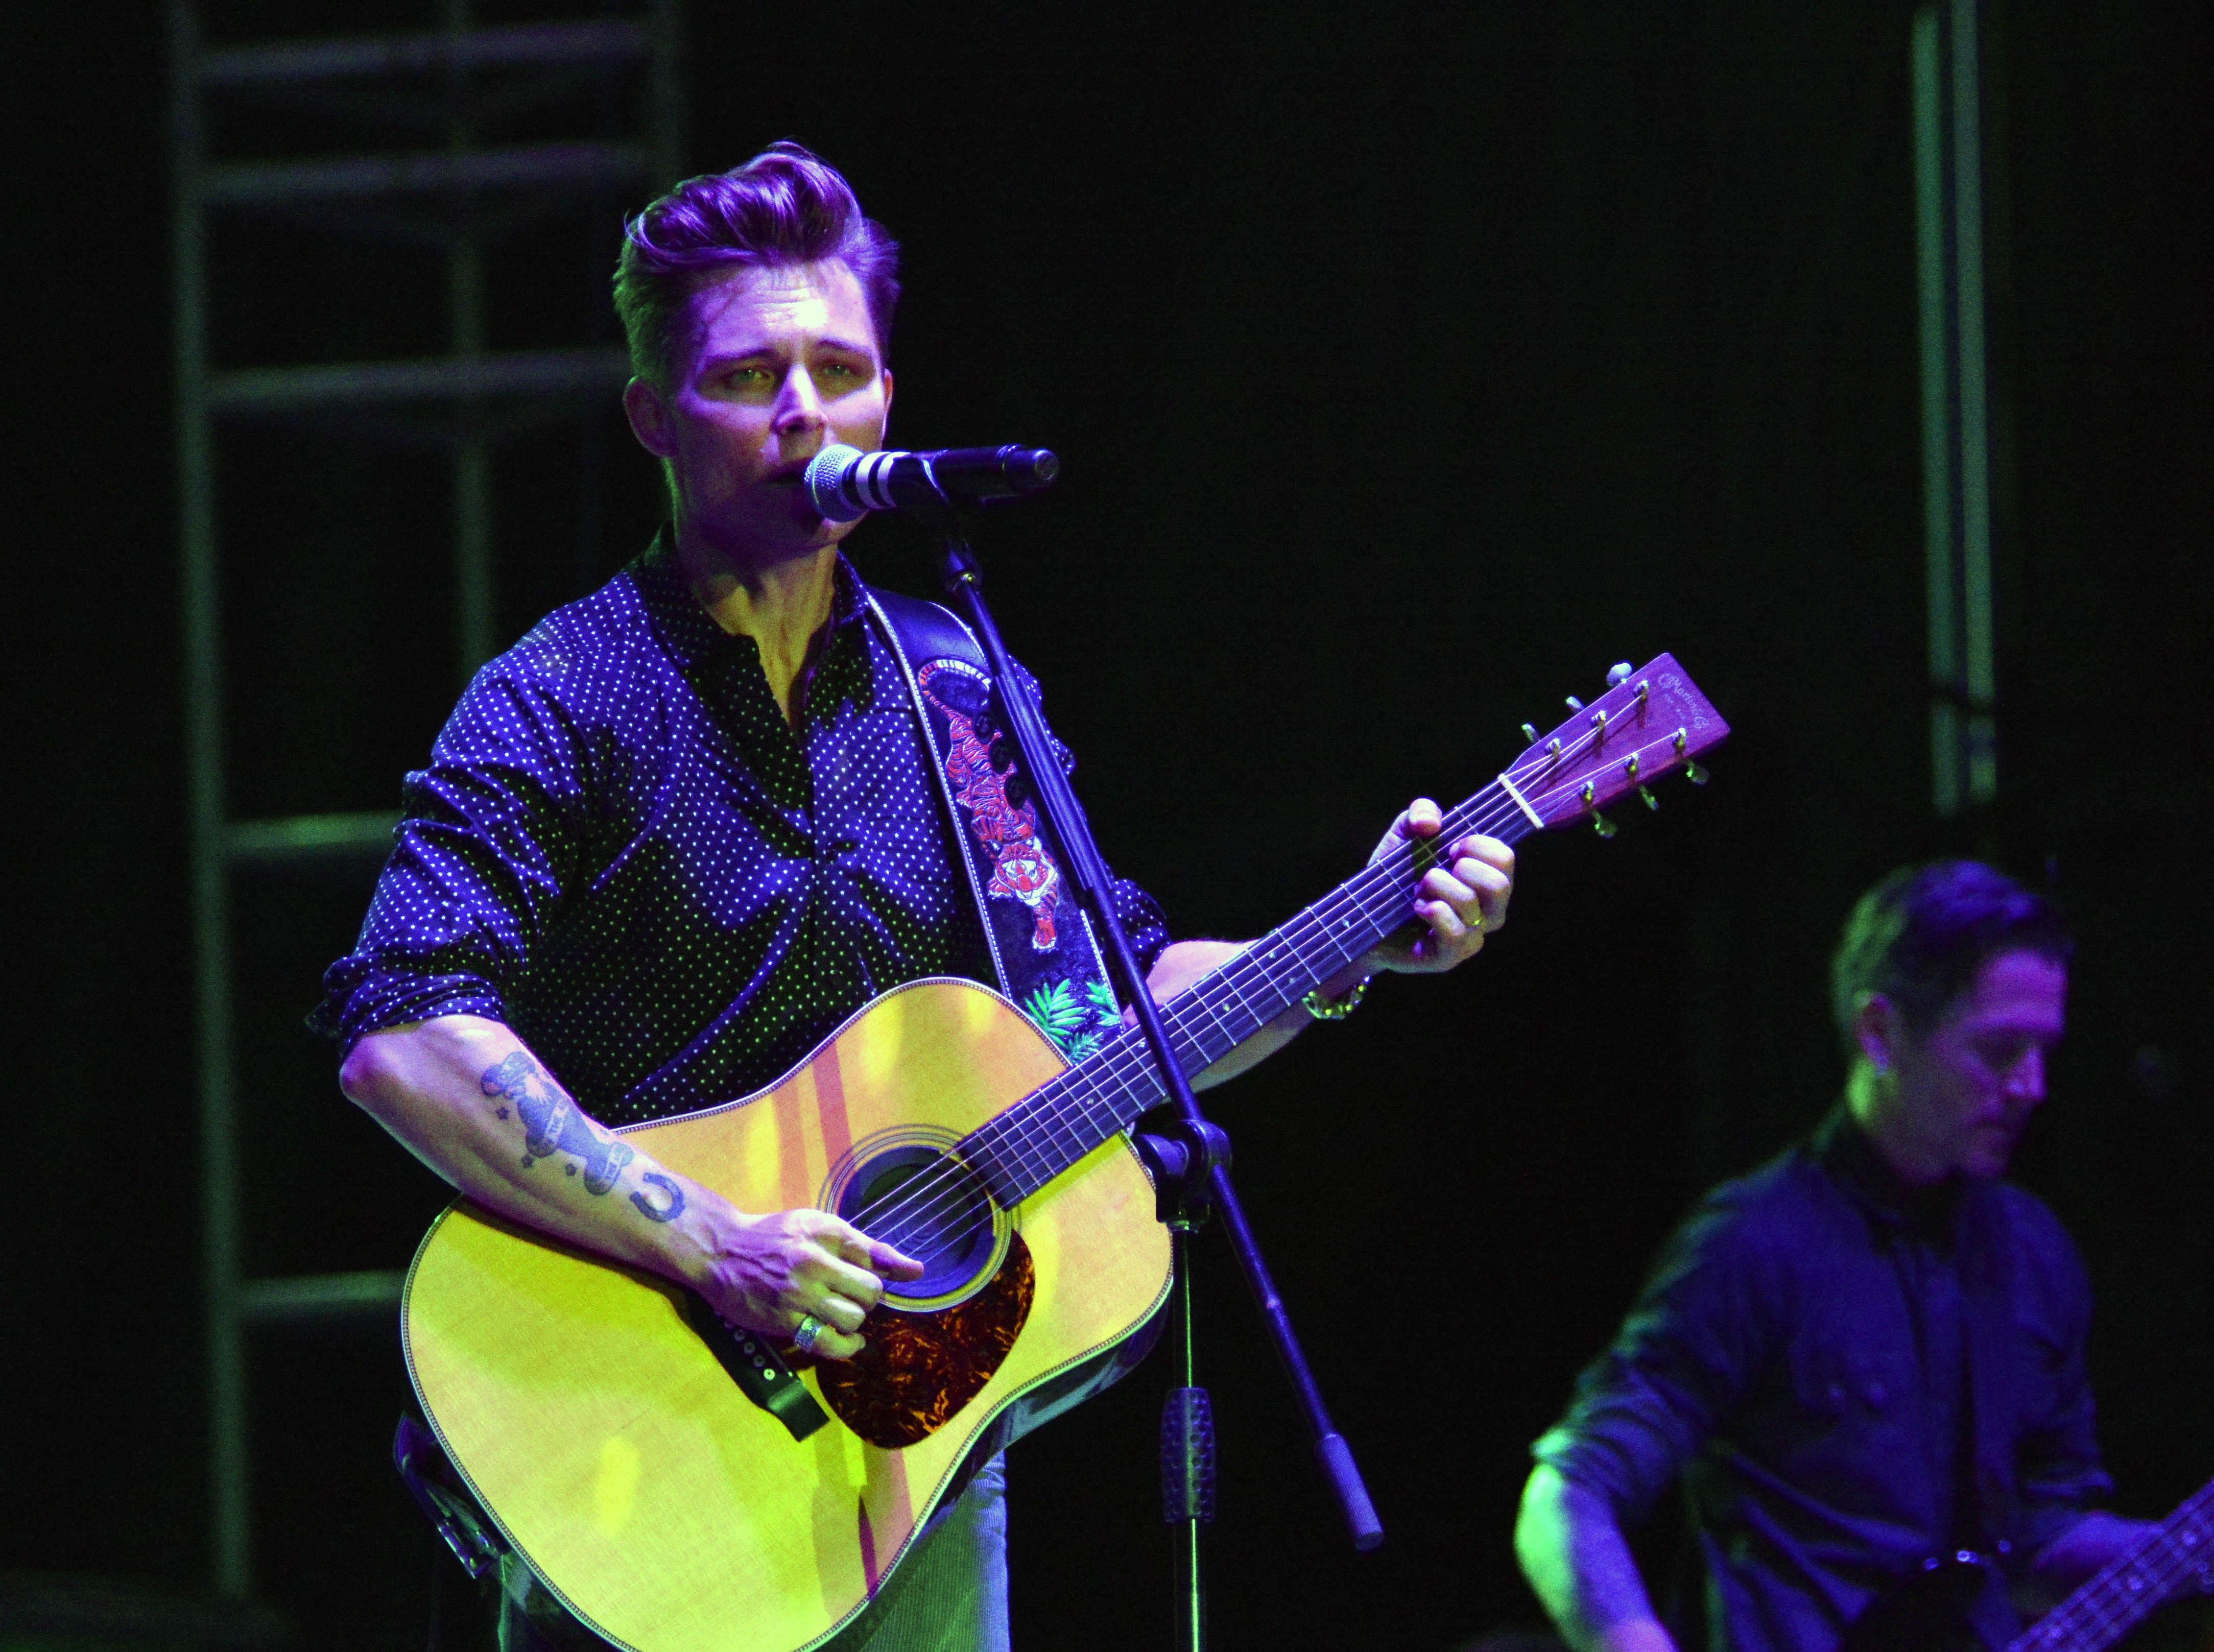 Frankie Ballard hits the Main Stage at the Las Cruces Country Music Festival on Friday, Oct. 19, 2018.